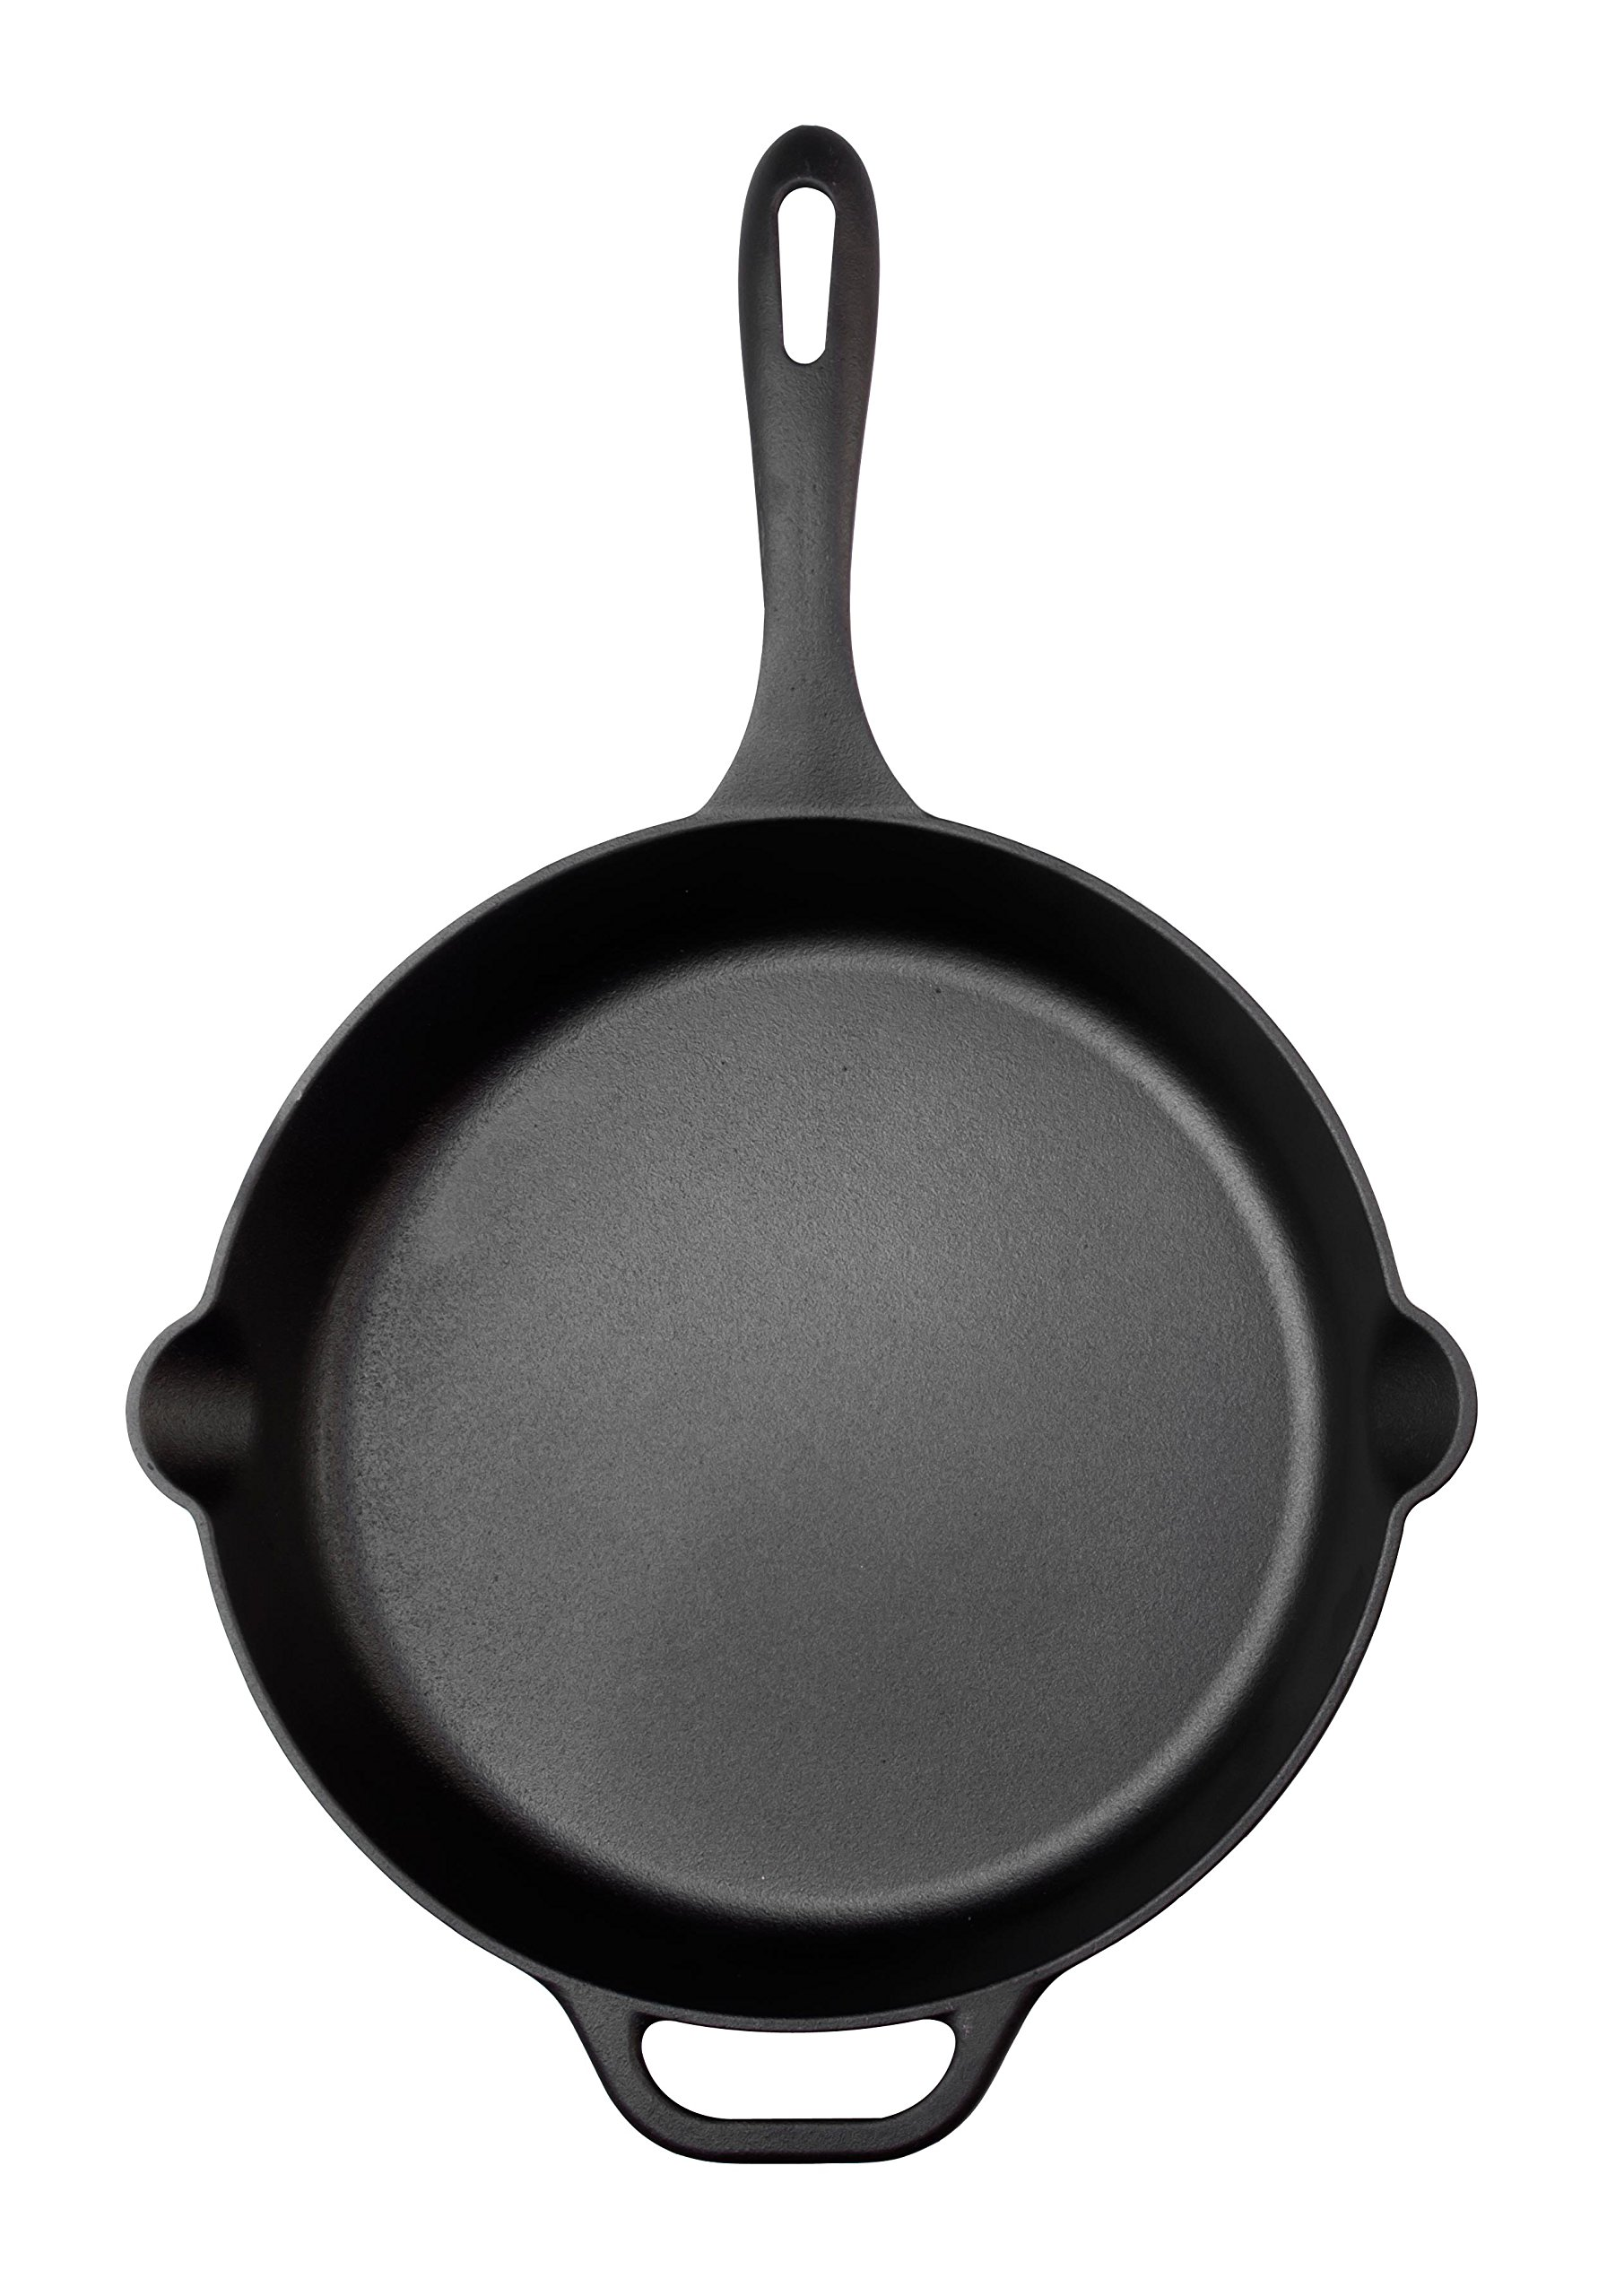 Large Pre-Seasoned Cast Iron Skillet by Victoria, 12-inch Round Frying Pan with Helper Handle, 100% Non-GMO Flaxseed Oil Seasoned, SKL-212 by Victoria (Image #3)